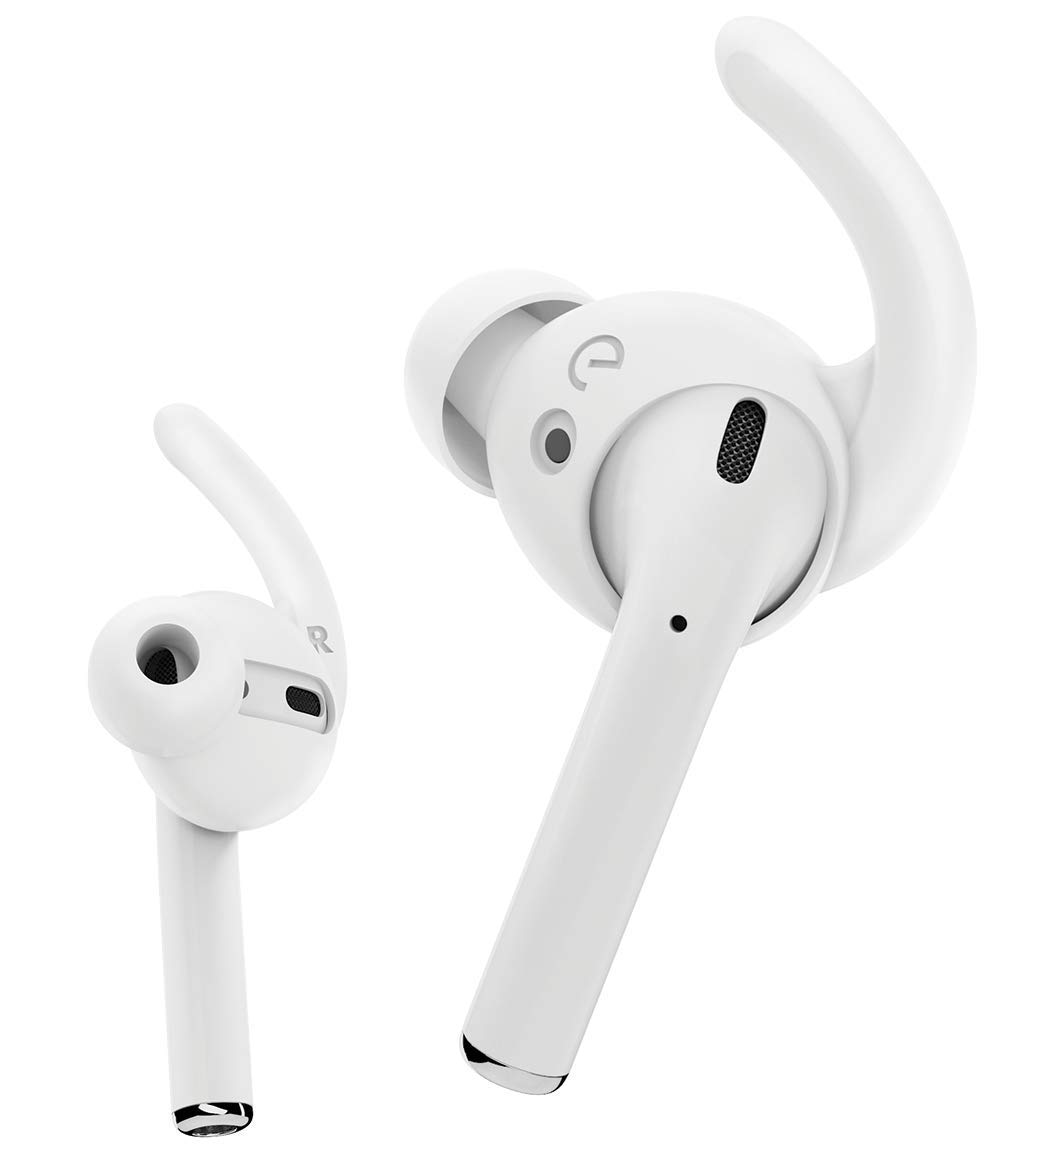 a2b72b68908 Amazon.com: EarBuddyz Ultra Ear Hooks and Covers Compatible with Apple  AirPods 1 & AirPods 2 or EarPods Featuring Bass Enhancement Technology  (Medium, ...